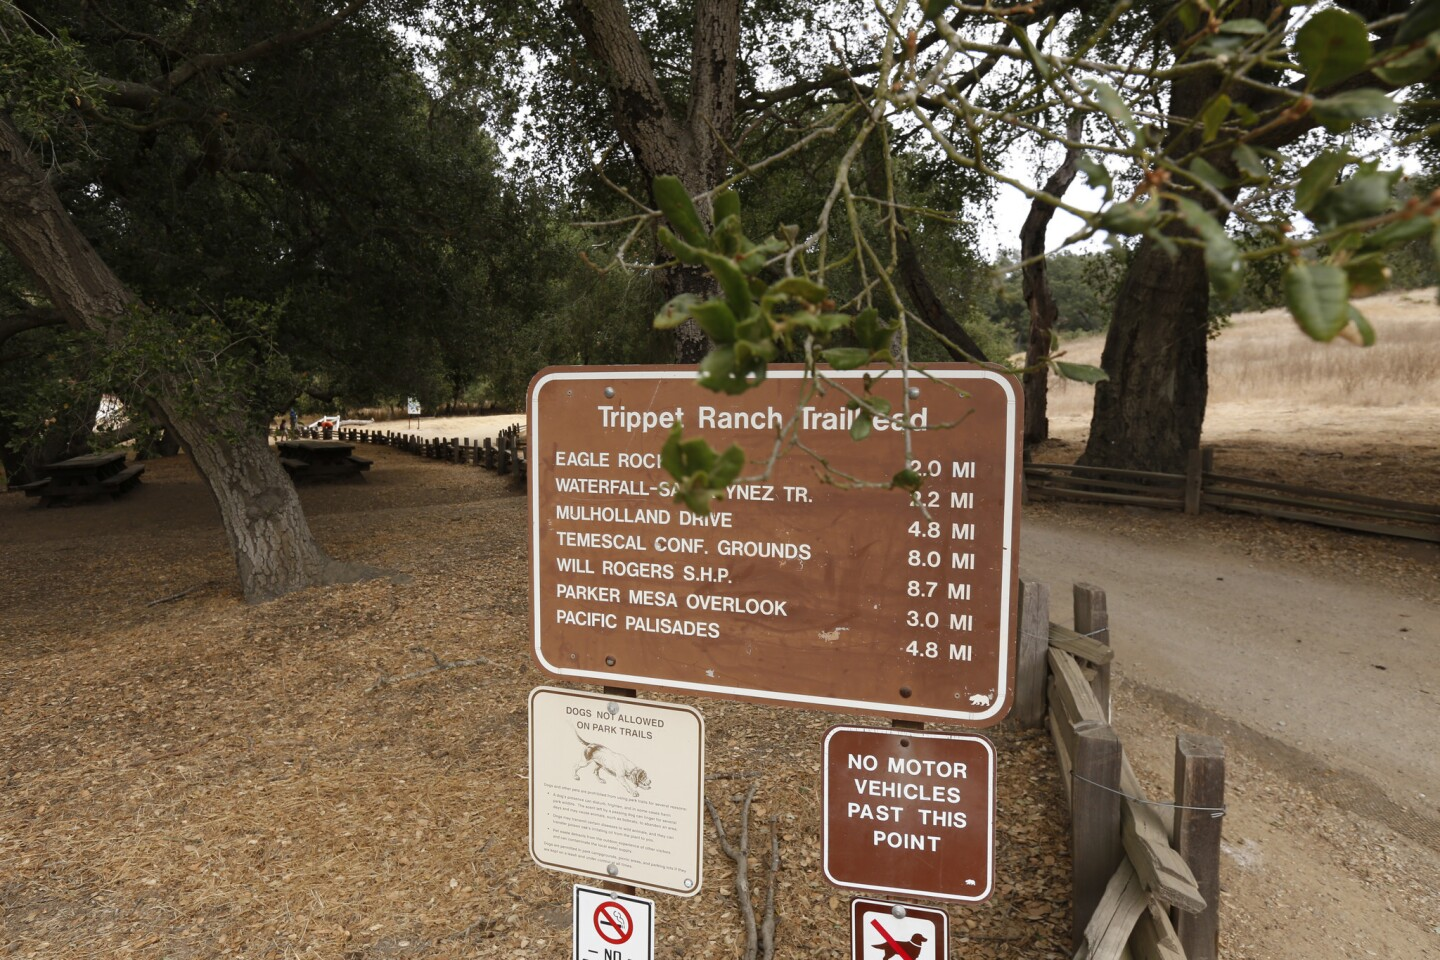 This is the start of Topanga Canyon's Trippet Ranch trail. This popular walk in the Santa Monica Mountains offers cool canyon trails and glorious ocean views.